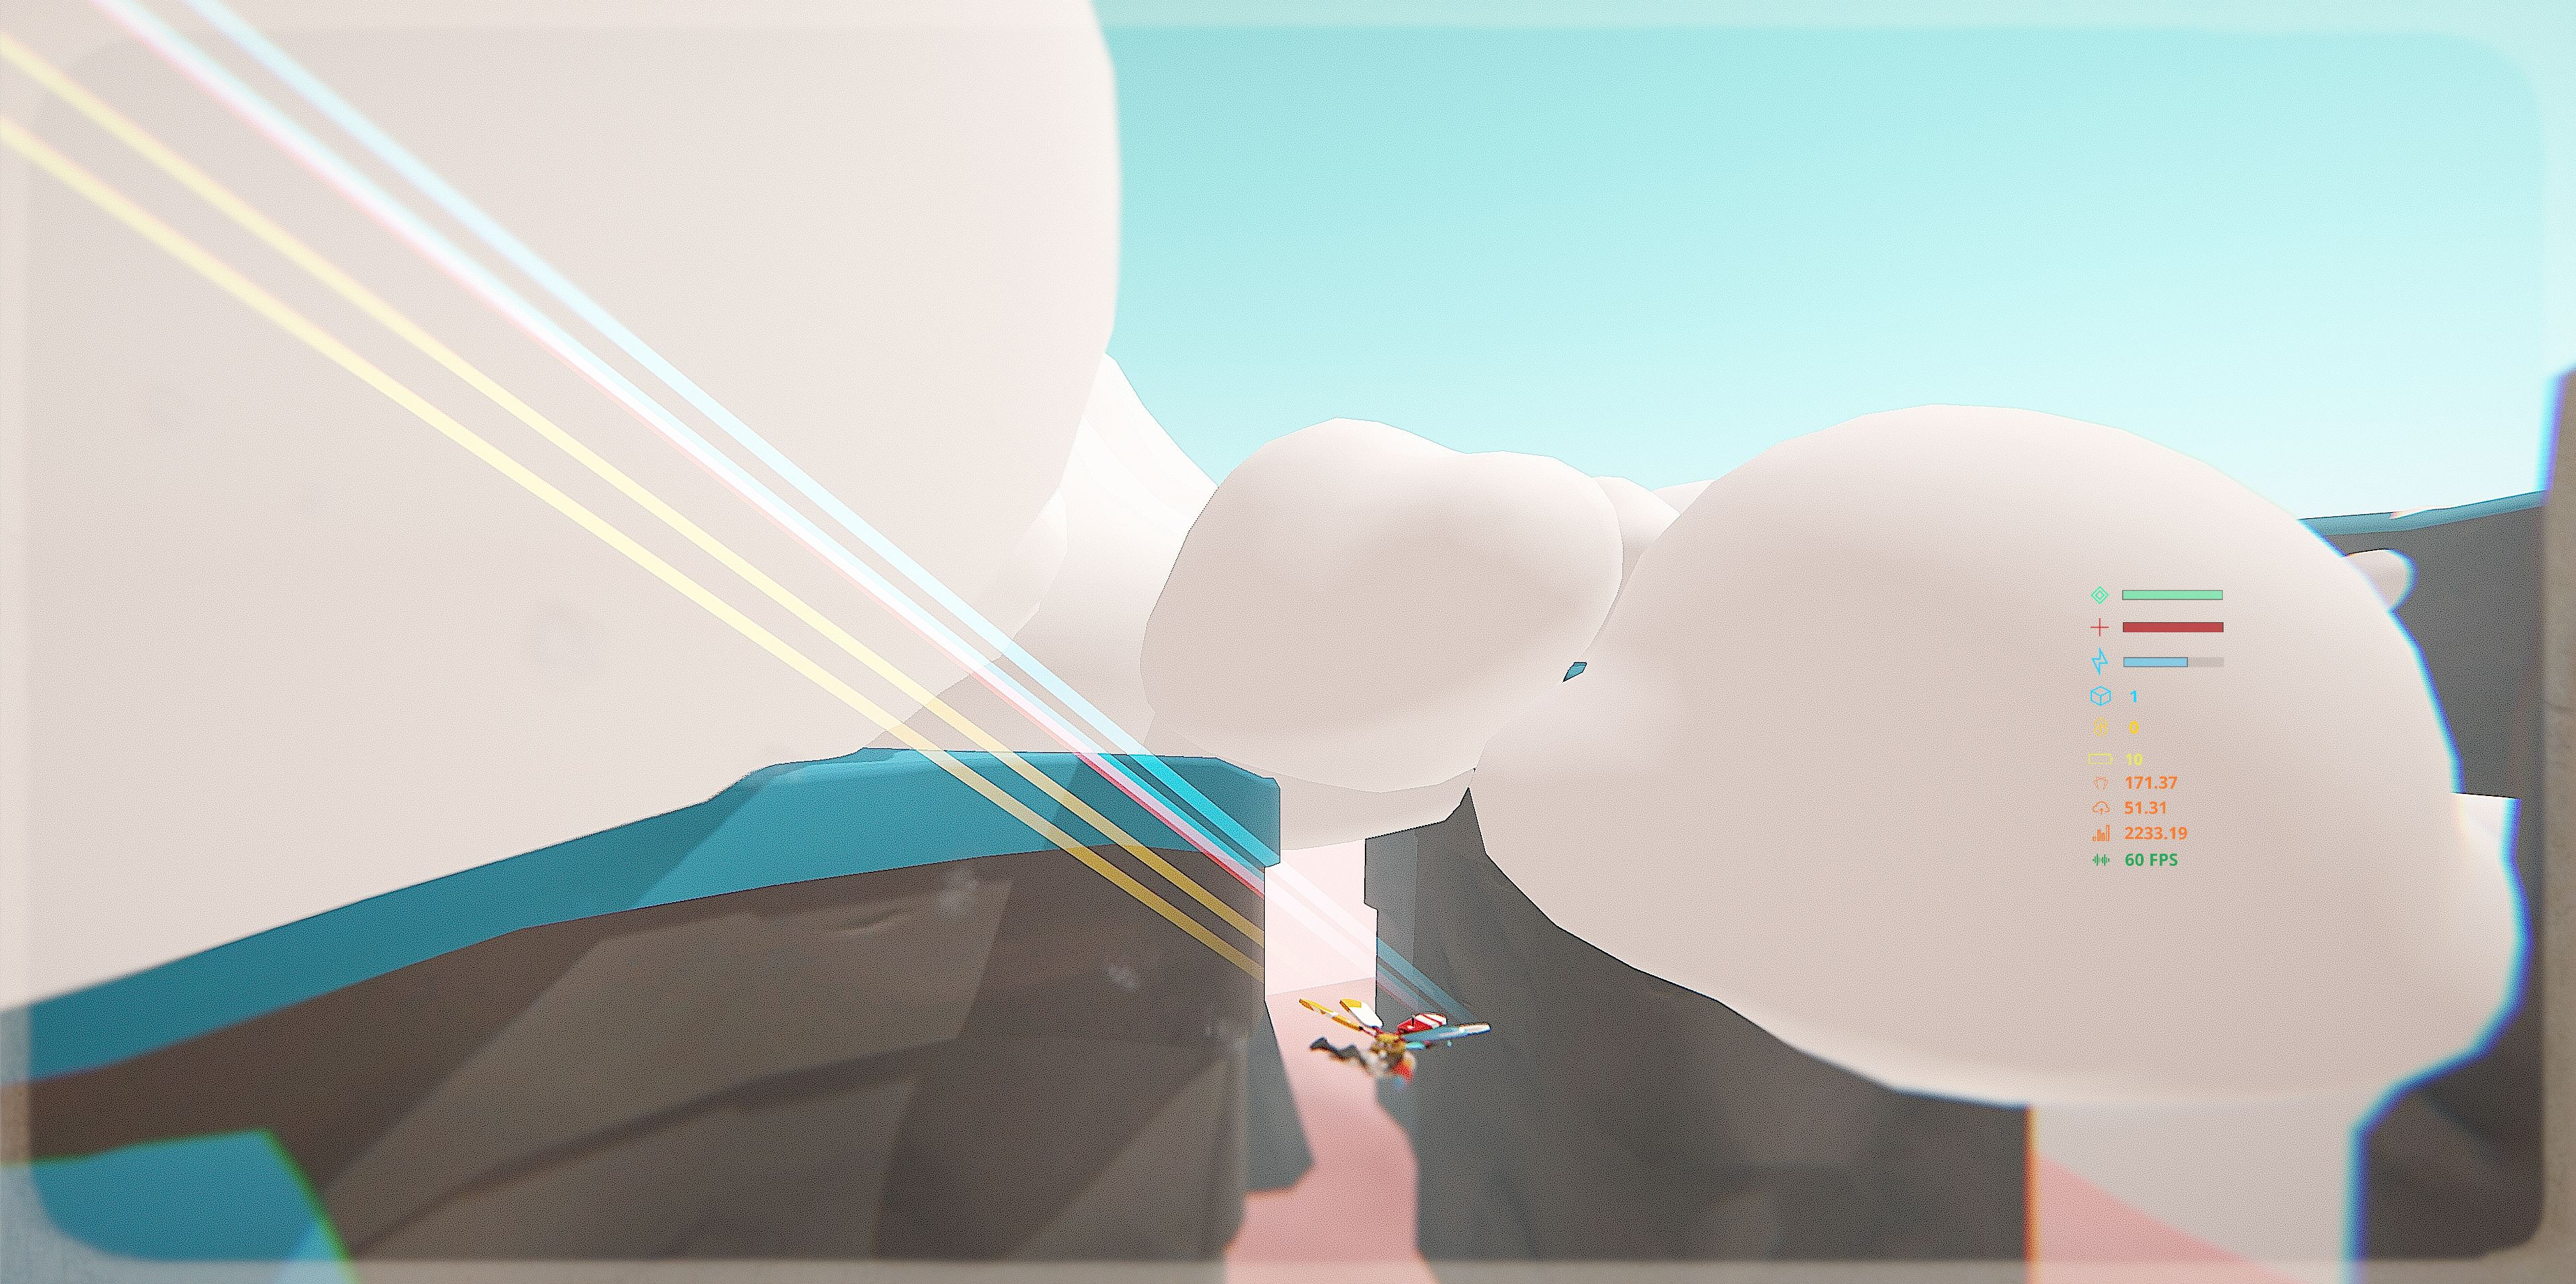 This is a large level designed to take advantage of the player's gliding ability.